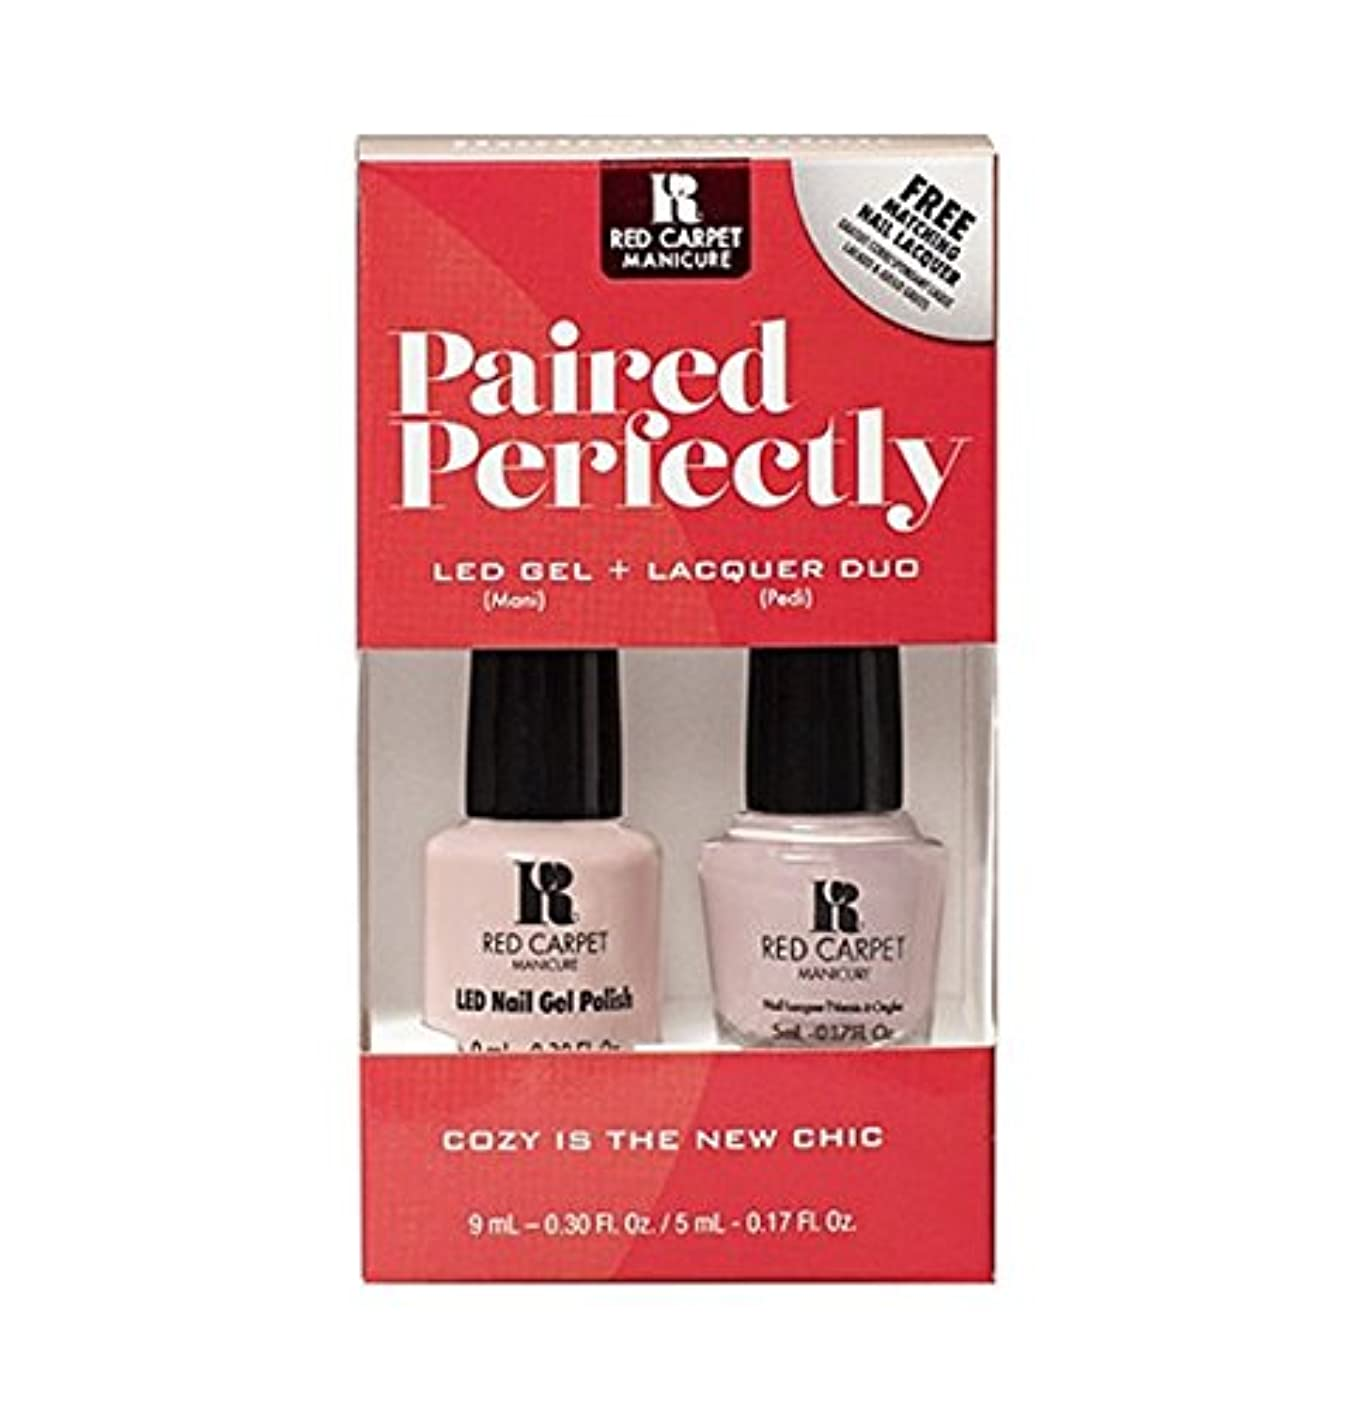 Red Carpet Manicure - Paired Perfectly GEL & Lacquer DUO - Cozy Is the New Chic